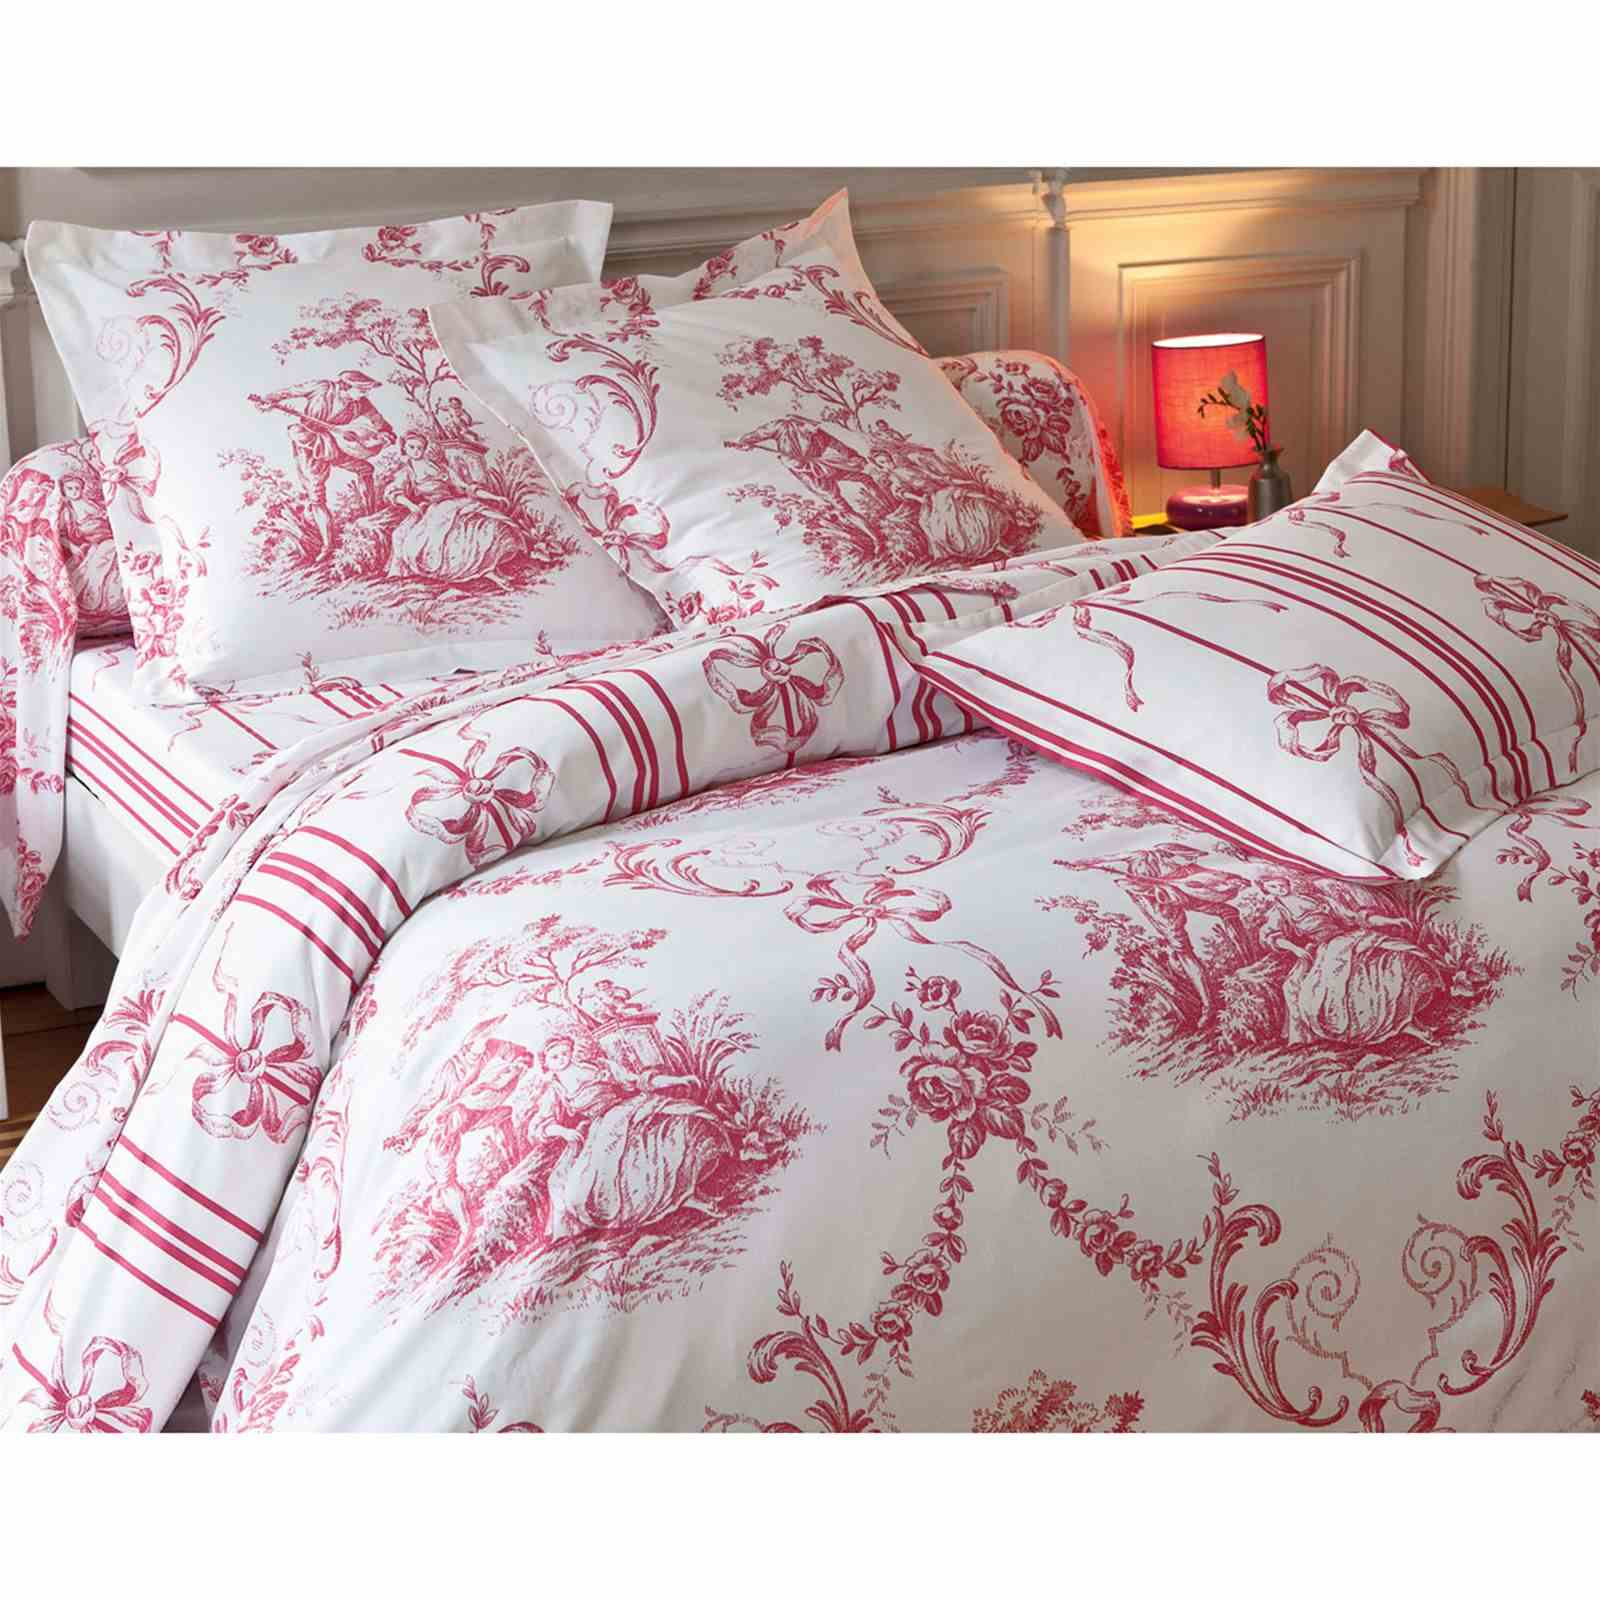 becquet housse de couette toile de jouy rose brandalley. Black Bedroom Furniture Sets. Home Design Ideas